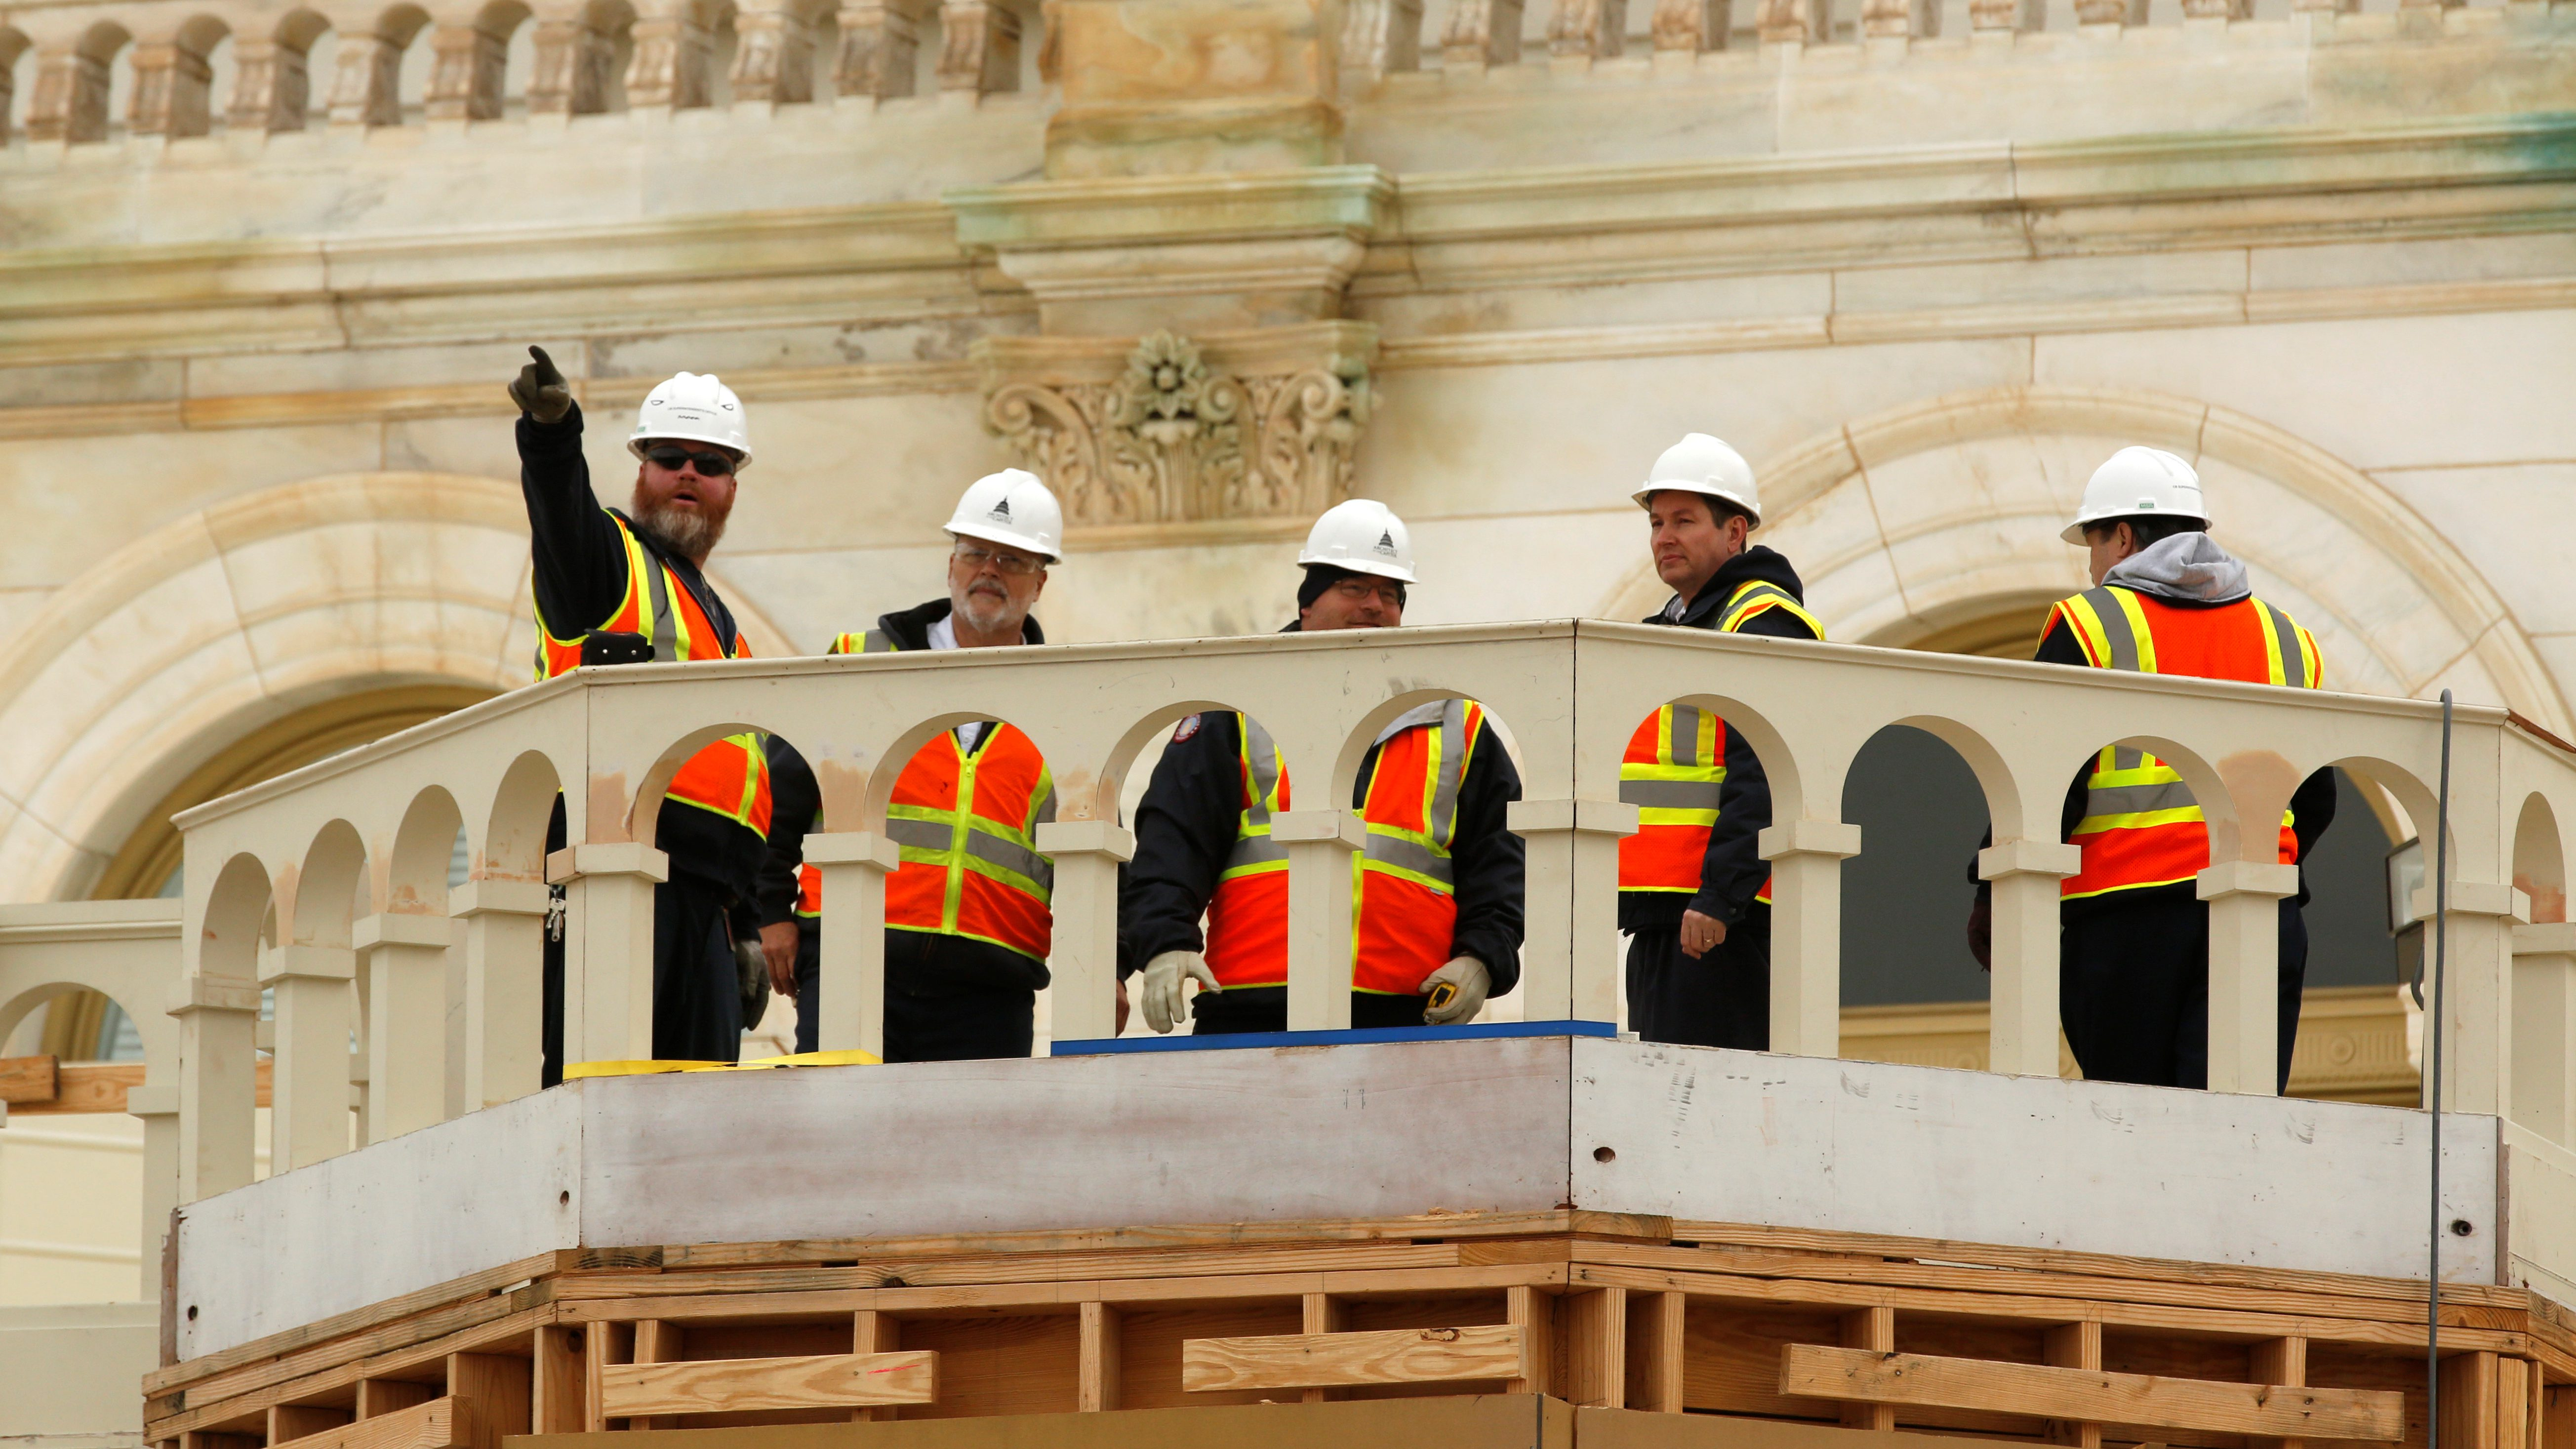 Workers construct the stands where U.S. President-elect Donald Trump wil take the oath of office during his January inauguration at the U.S. Capitol in Washington, U.S., December 8, 2016.  REUTERS/Jonathan Ernst - RTSVA7T